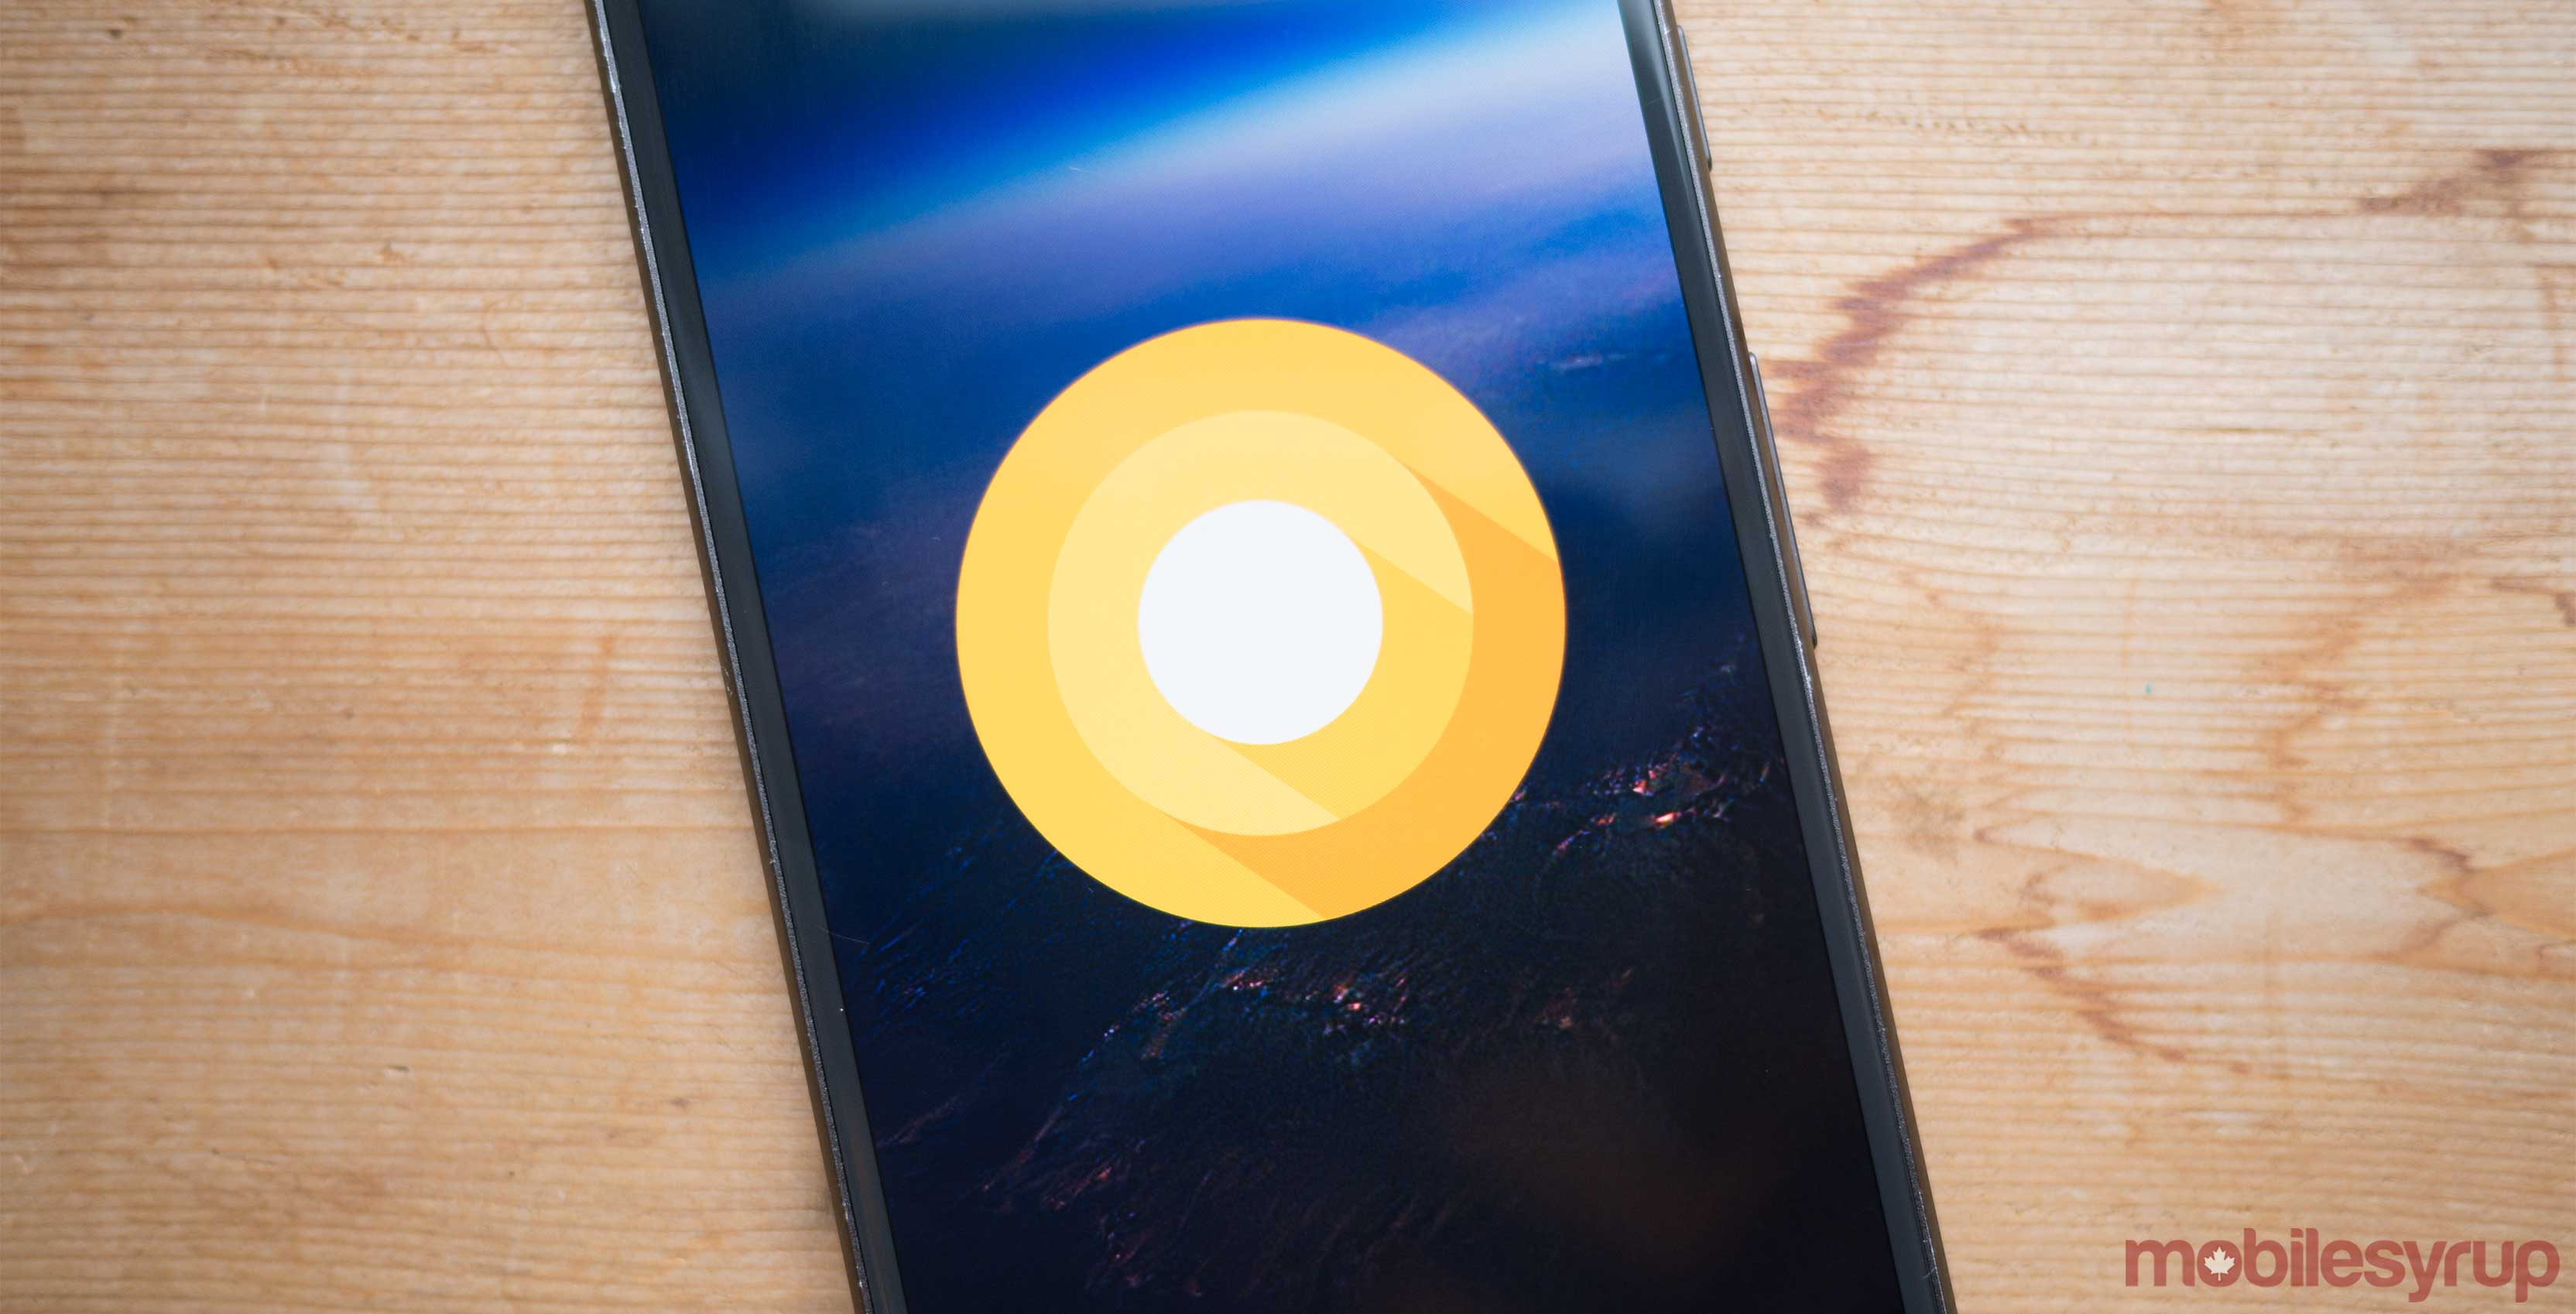 Android O on a Pixel device